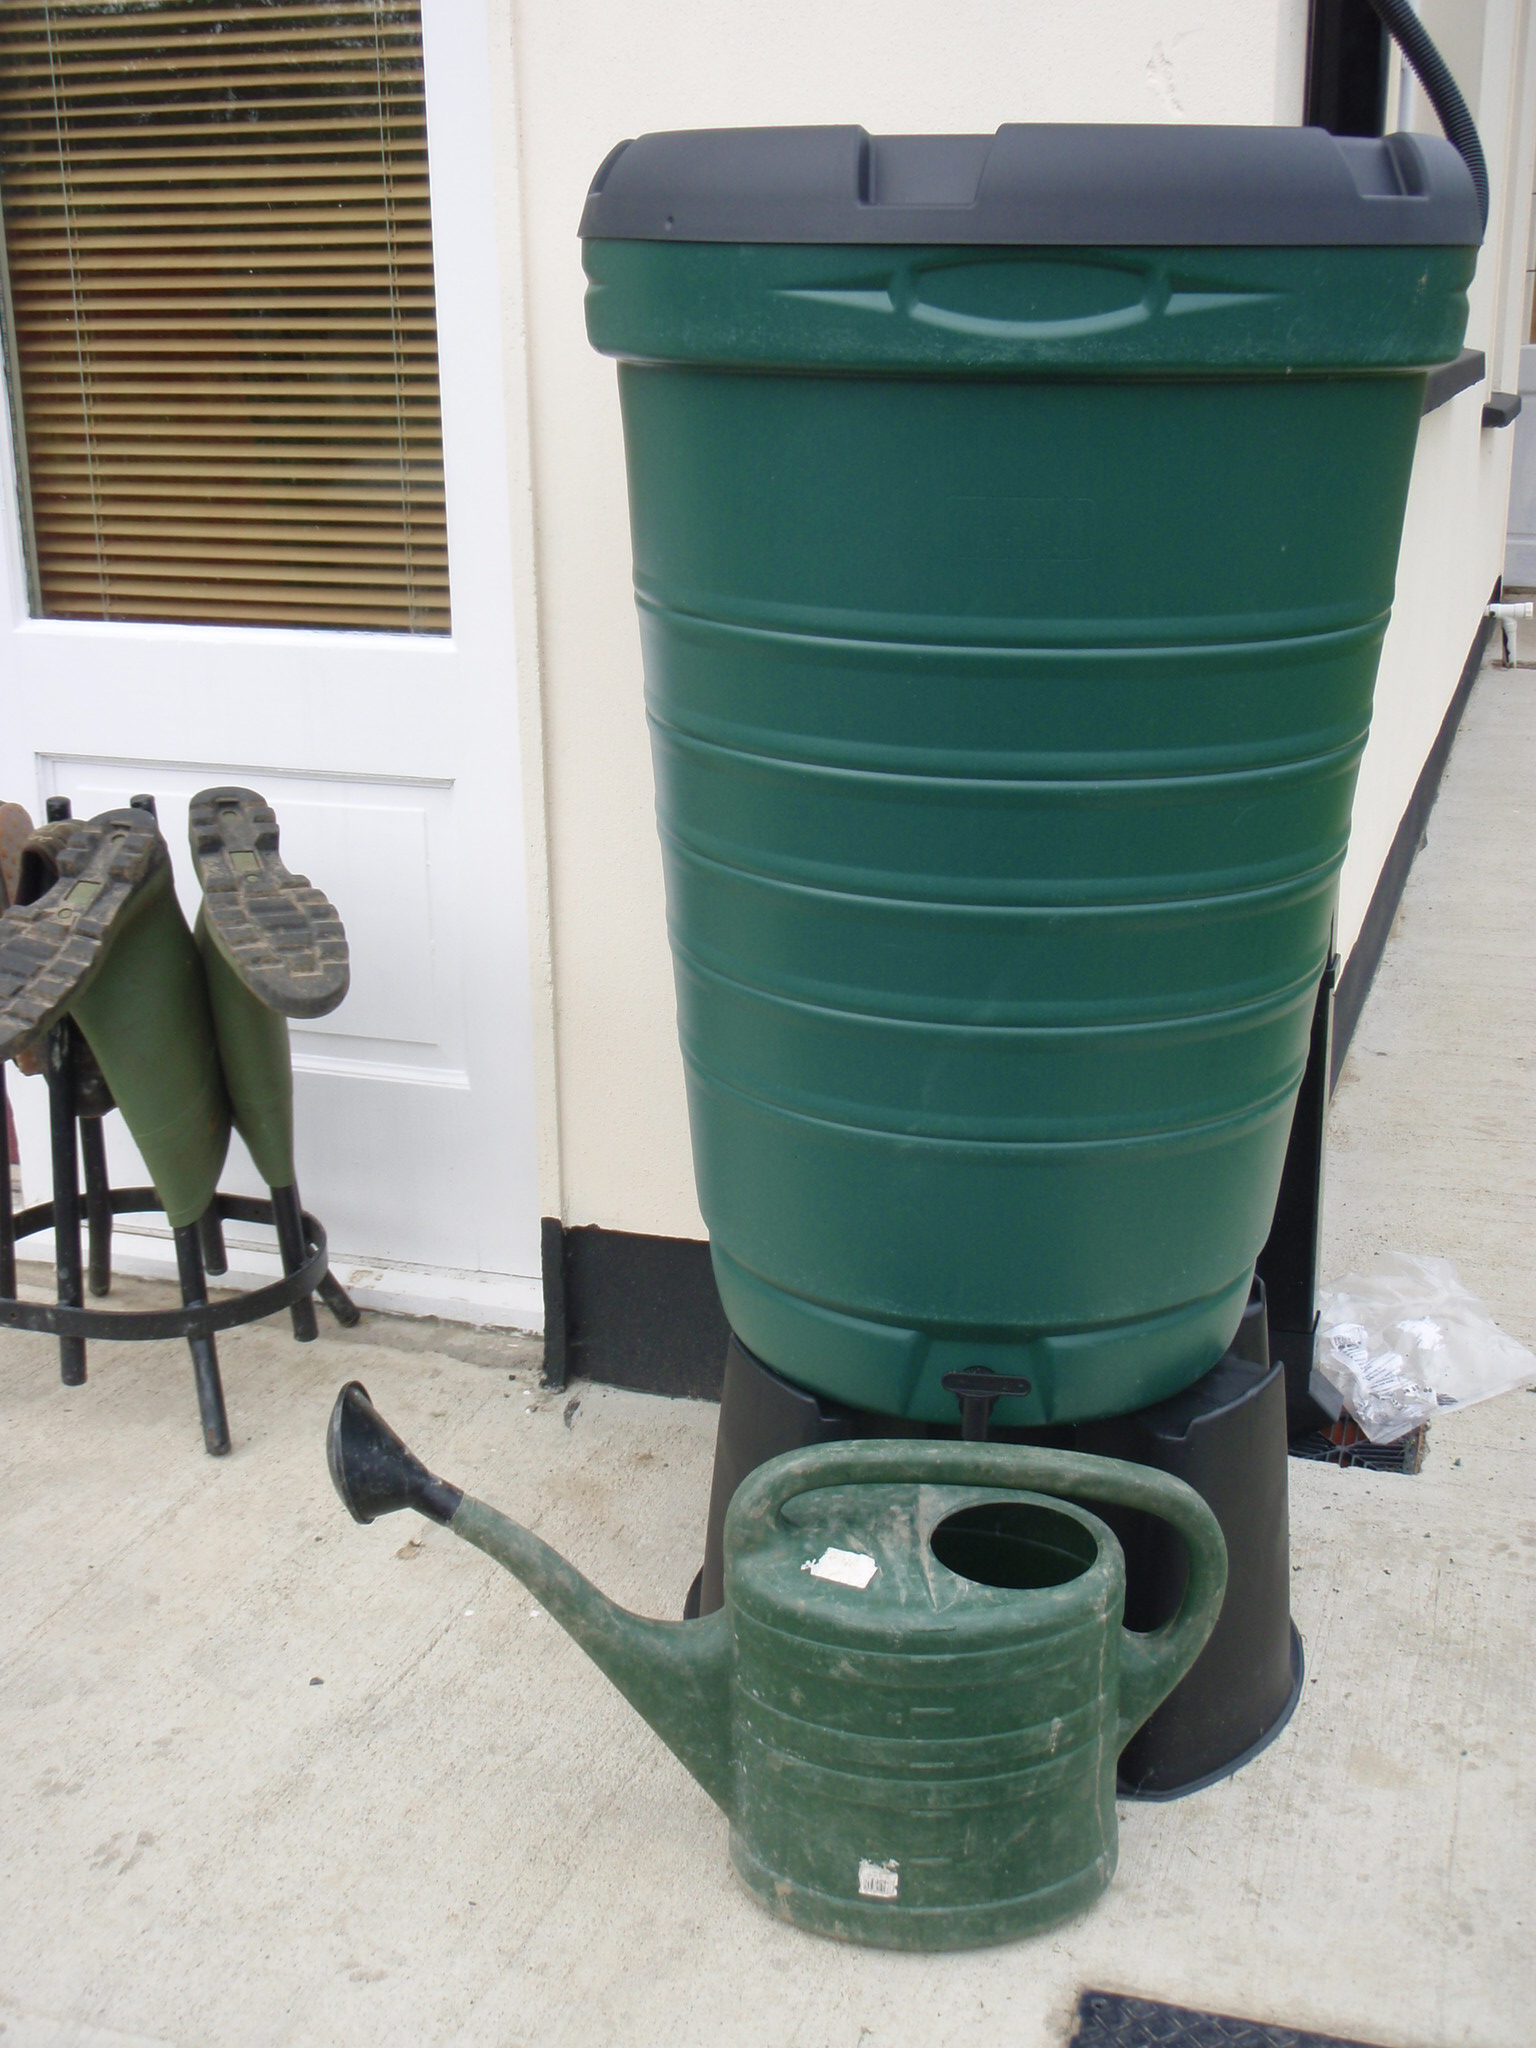 peter donegan - rain water harvesting butts